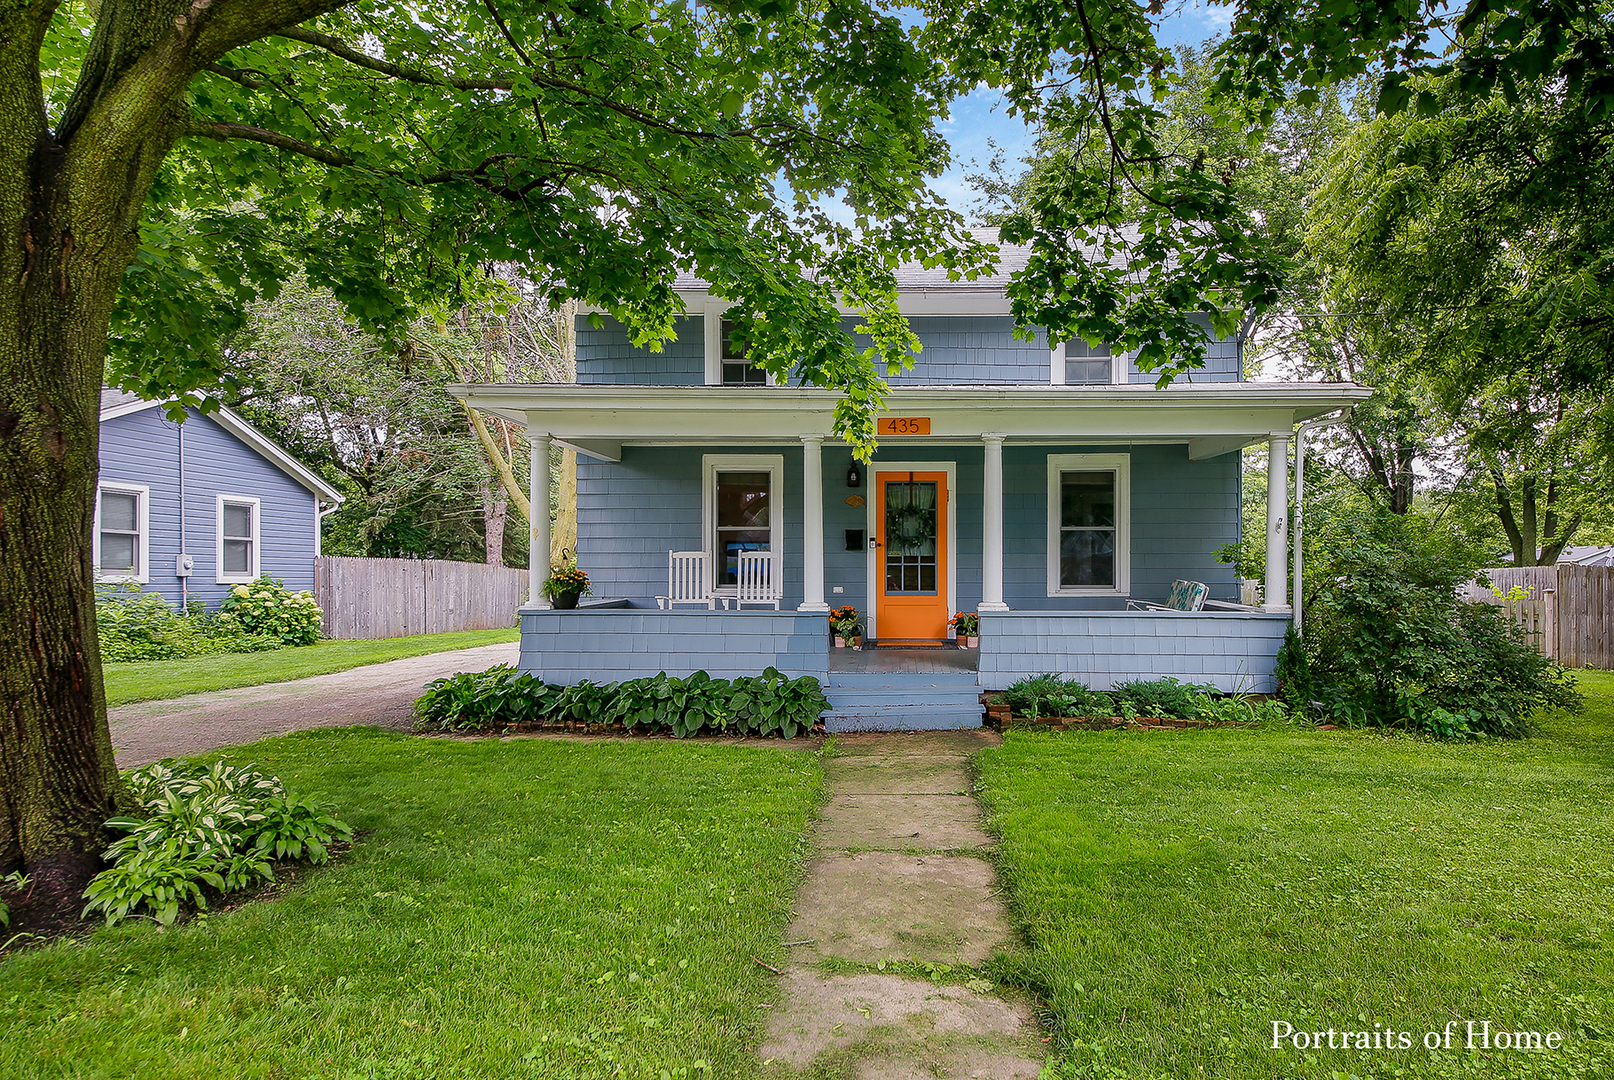 Photo for 435 Cleveland Avenue, BATAVIA, IL 60510 (MLS # 10429001)